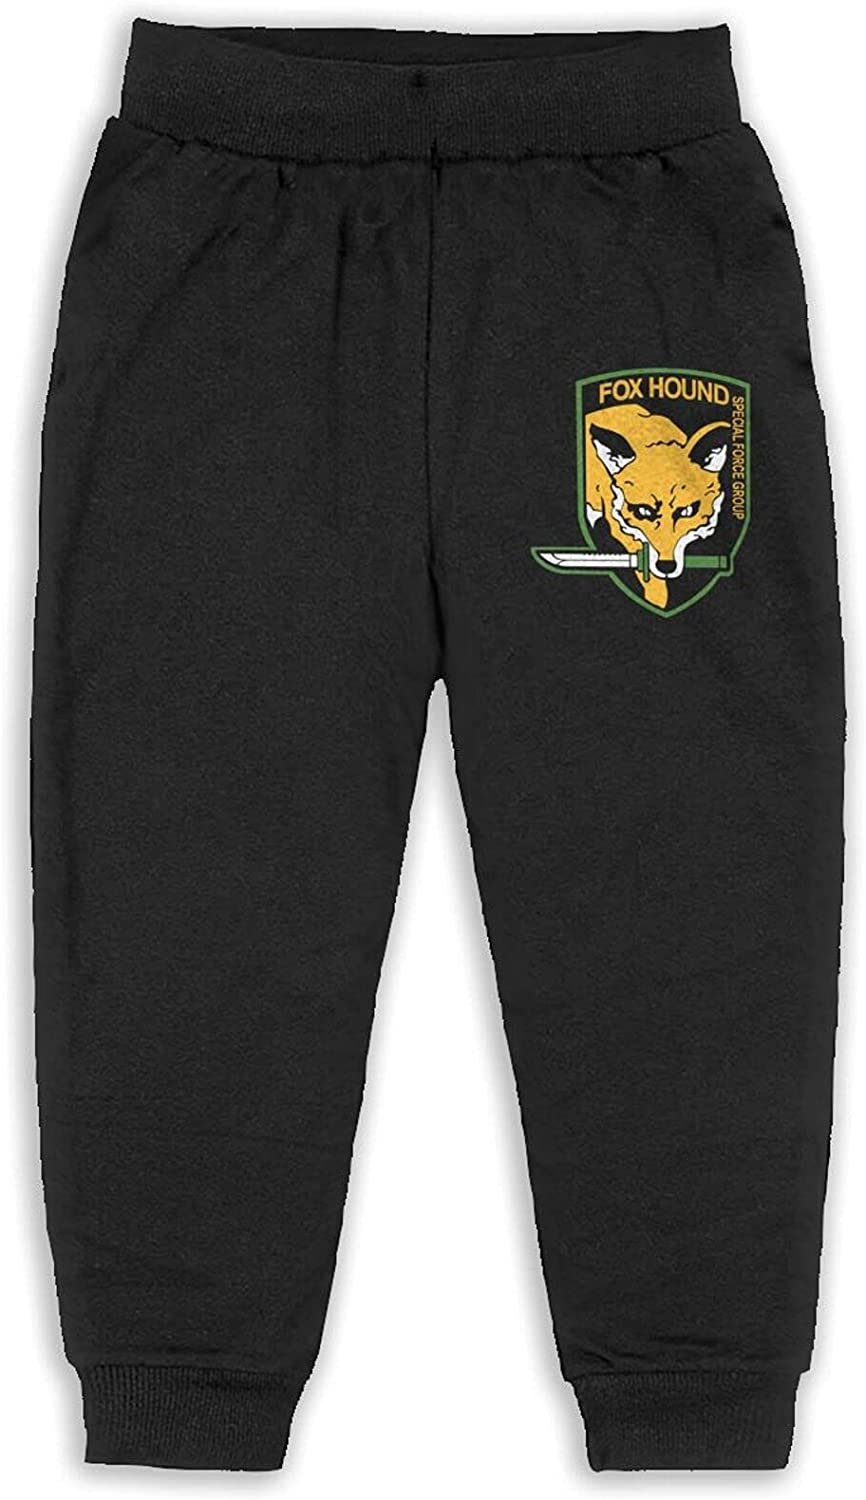 Unisex Kids Metal Gear Solid Fox Hound Pant Cotton Training Pants Basic Pants for Child